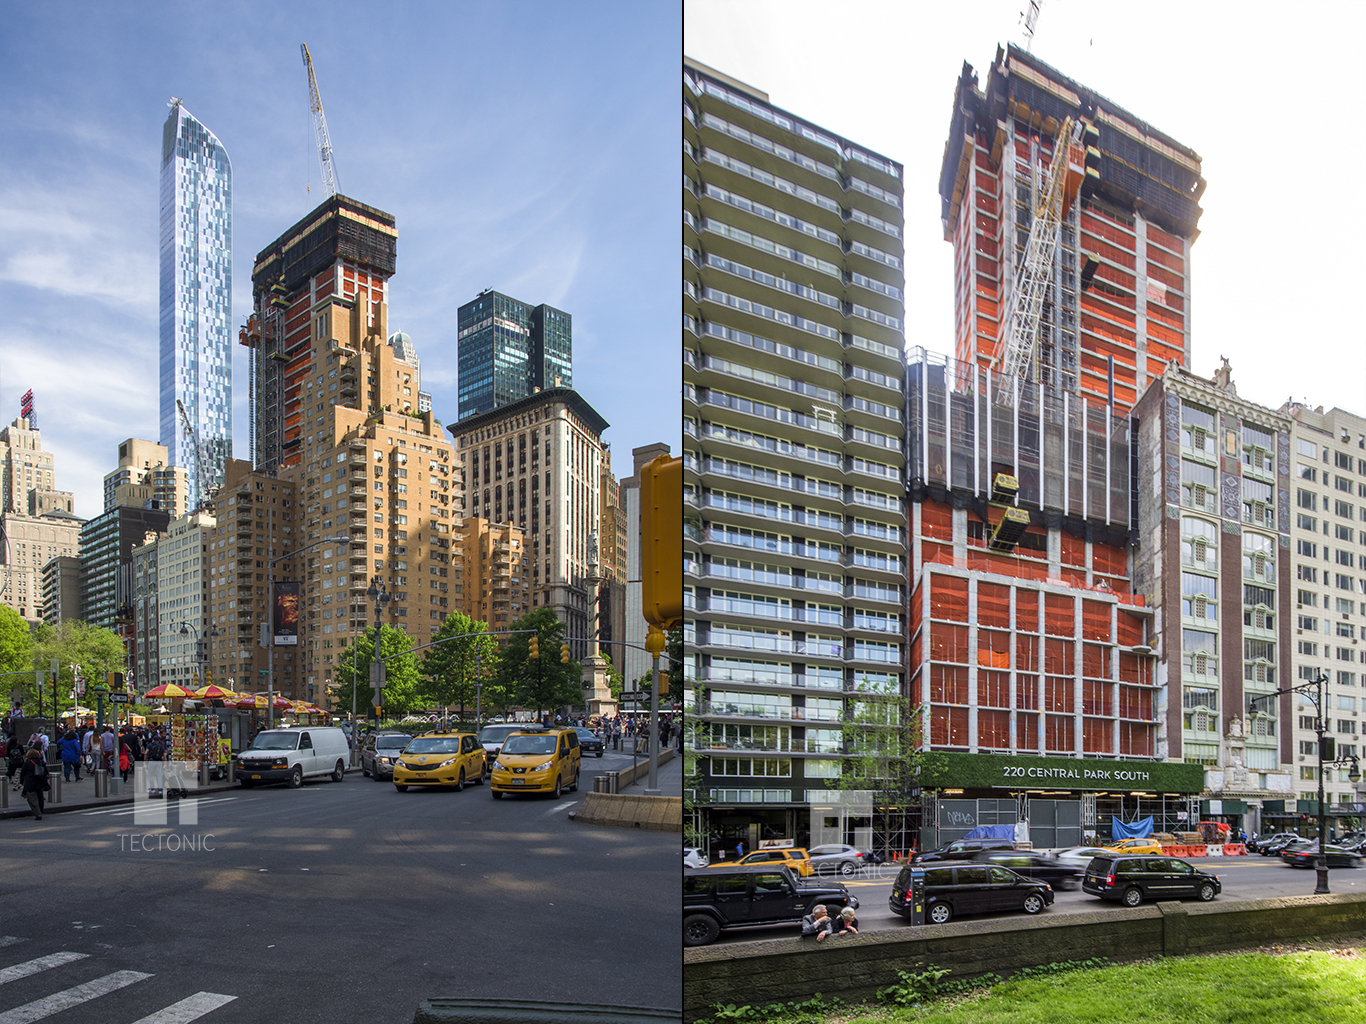 220 Central Park South, as seen from Columbus Circle and from Central Park. Photos by Tectonic for YIMBY